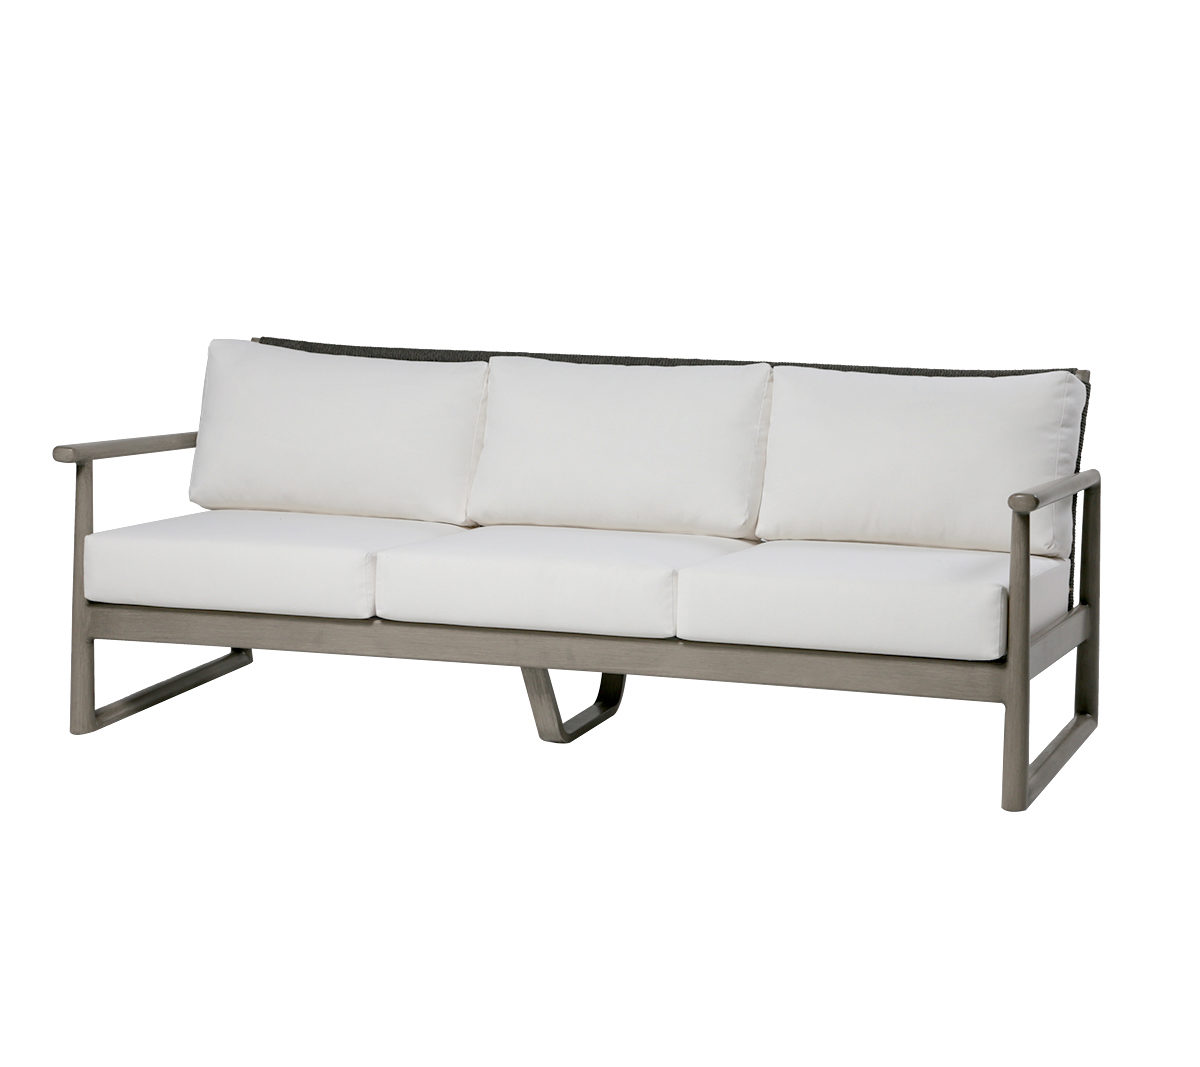 Park West sofa in grey metal frame with cream cushions.